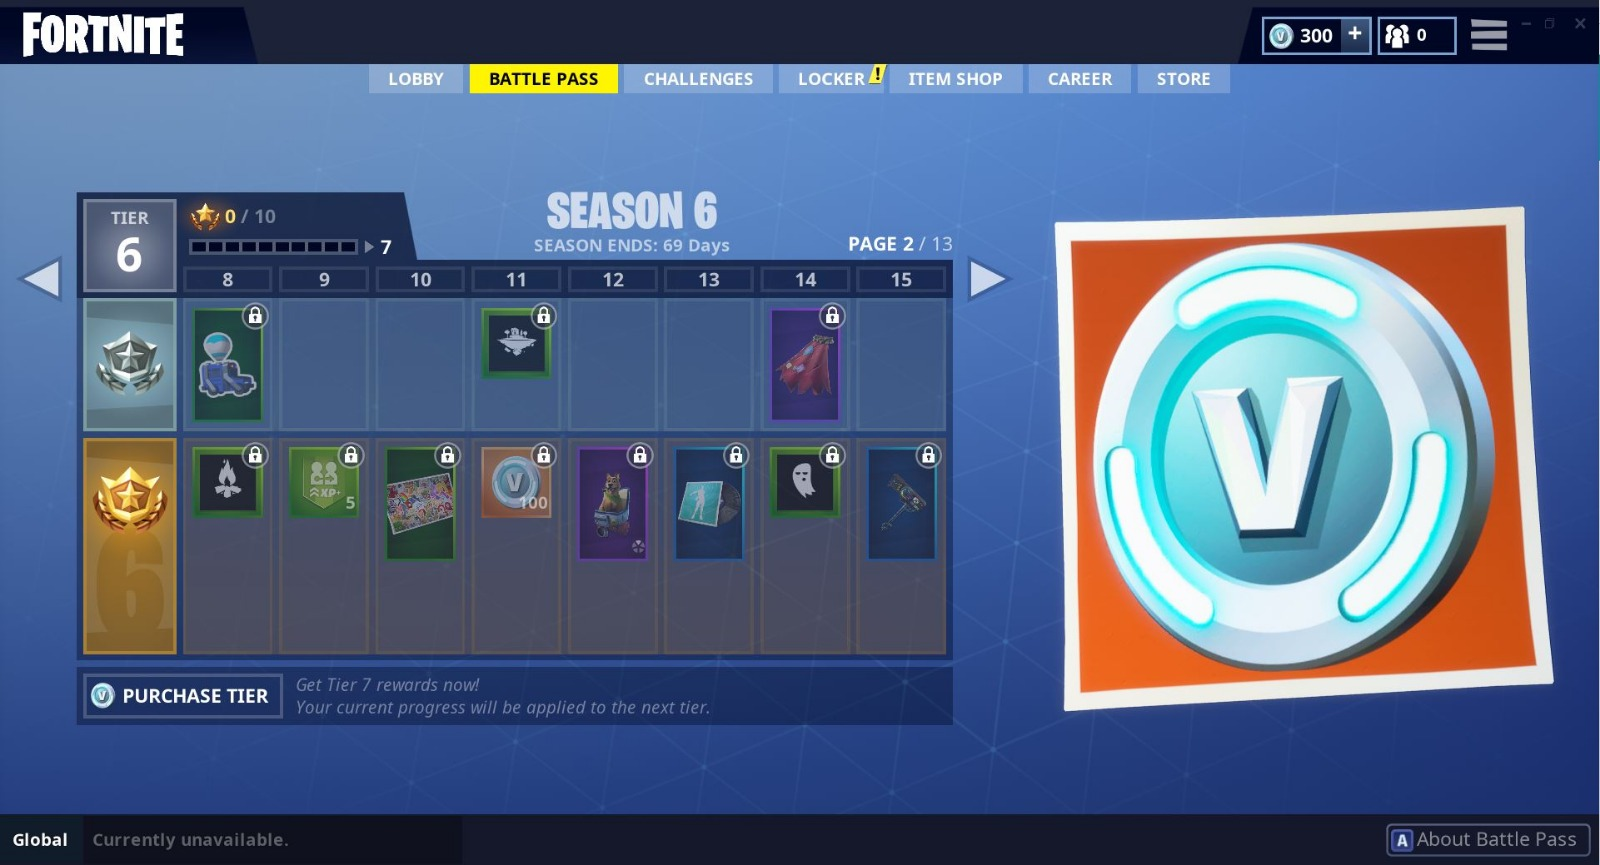 Fortnite Season 6 Battle Pass All Rewards Fortnite Insider